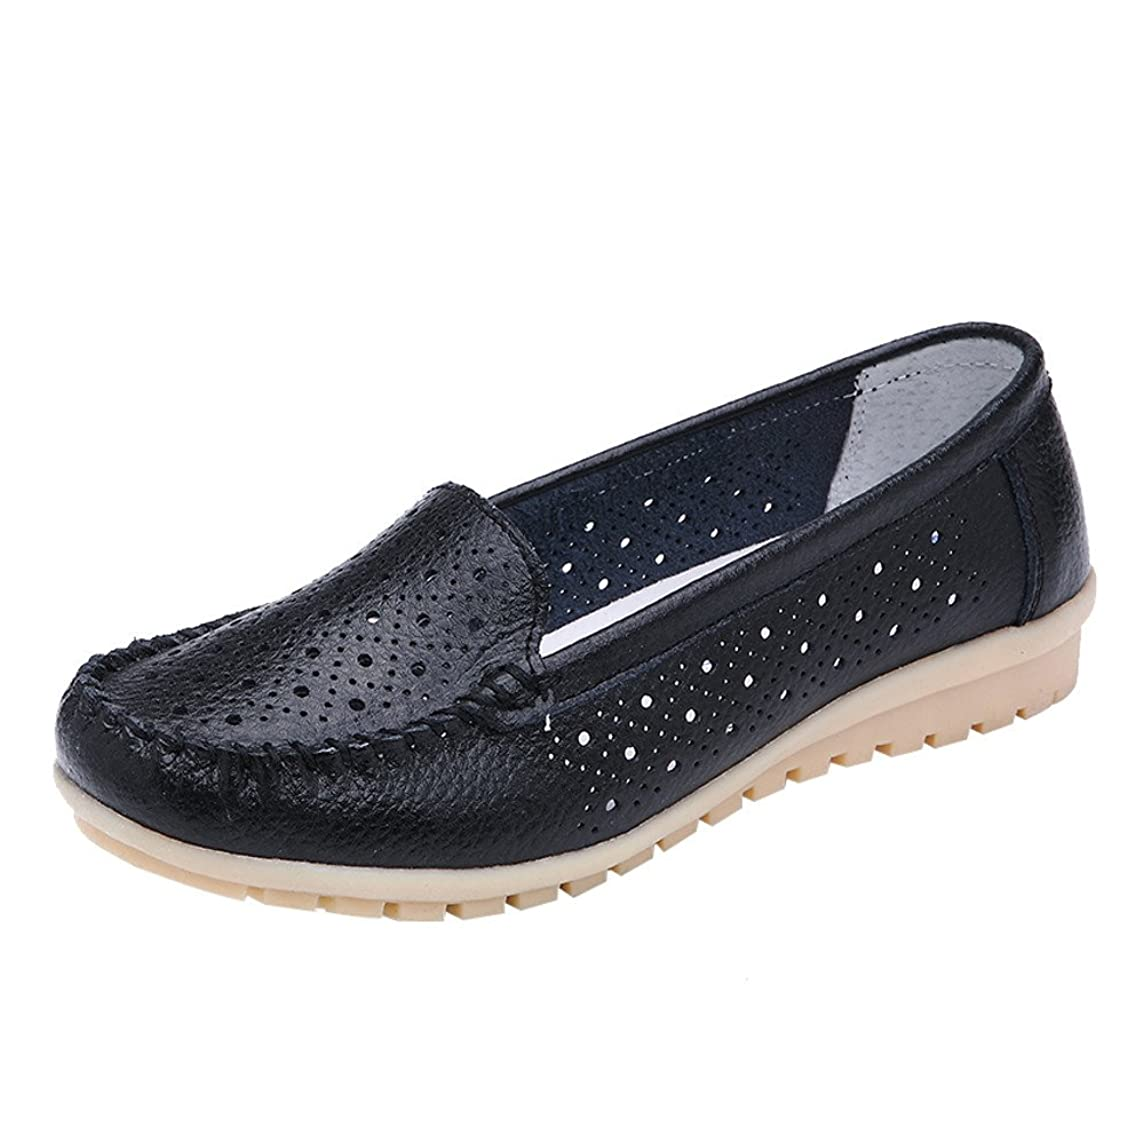 Loafers for Women Comfort,SMALLE??? Women's Retro Slip-On Hollow Penny Loafers Shoes Dress Casual Driving Flat Shoes